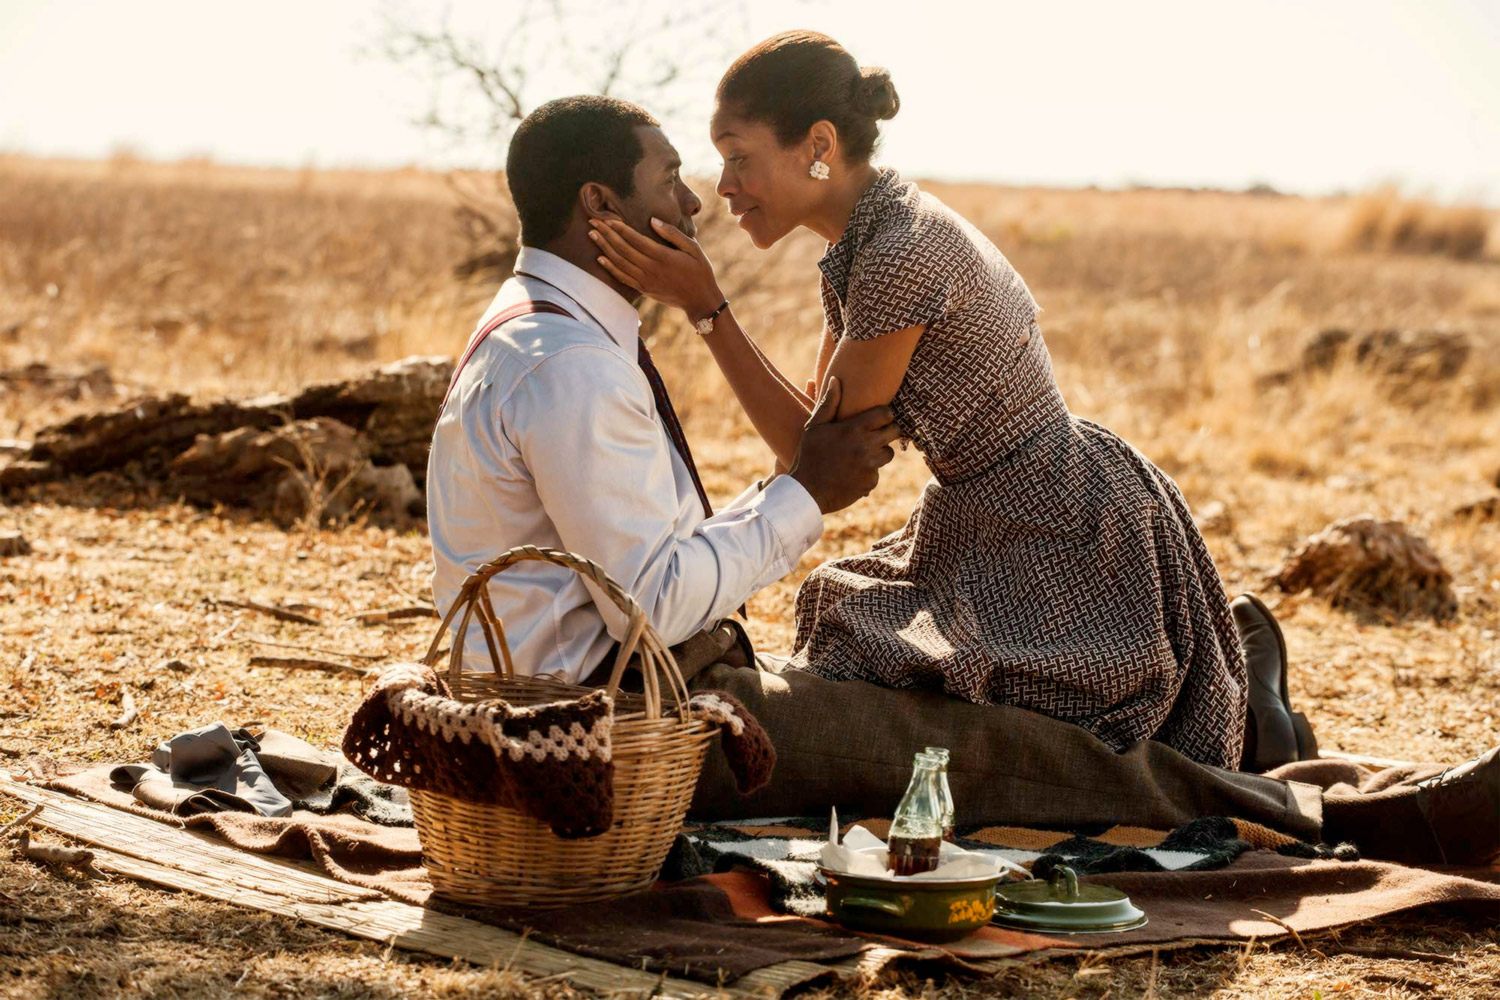 In the United States, leading film critics were unanimous in their praise for Mandela: Long Walk To Freedom / Videovision Entertainment (p)